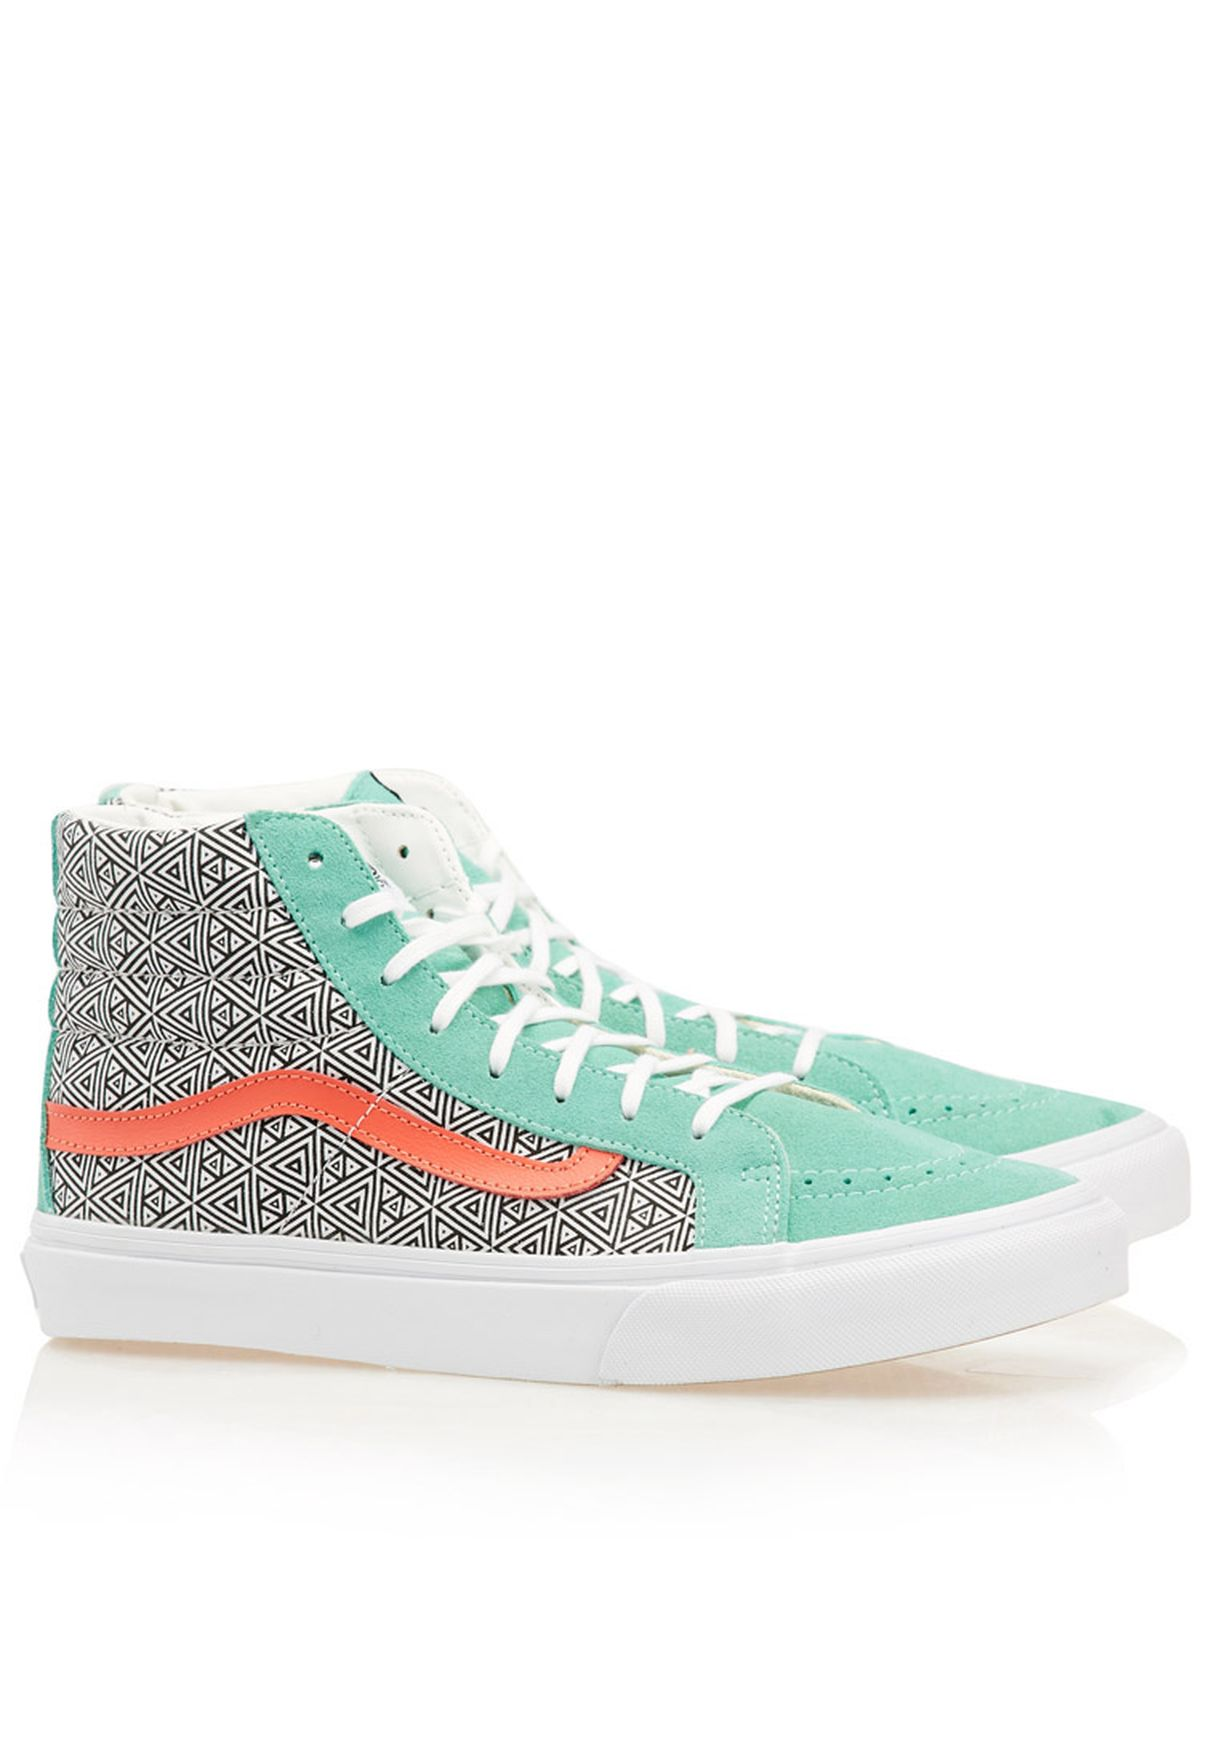 e6c21b883e Shop Vans multicolor Geometric SK8 HI Slim Sneakers for Women in UAE ...